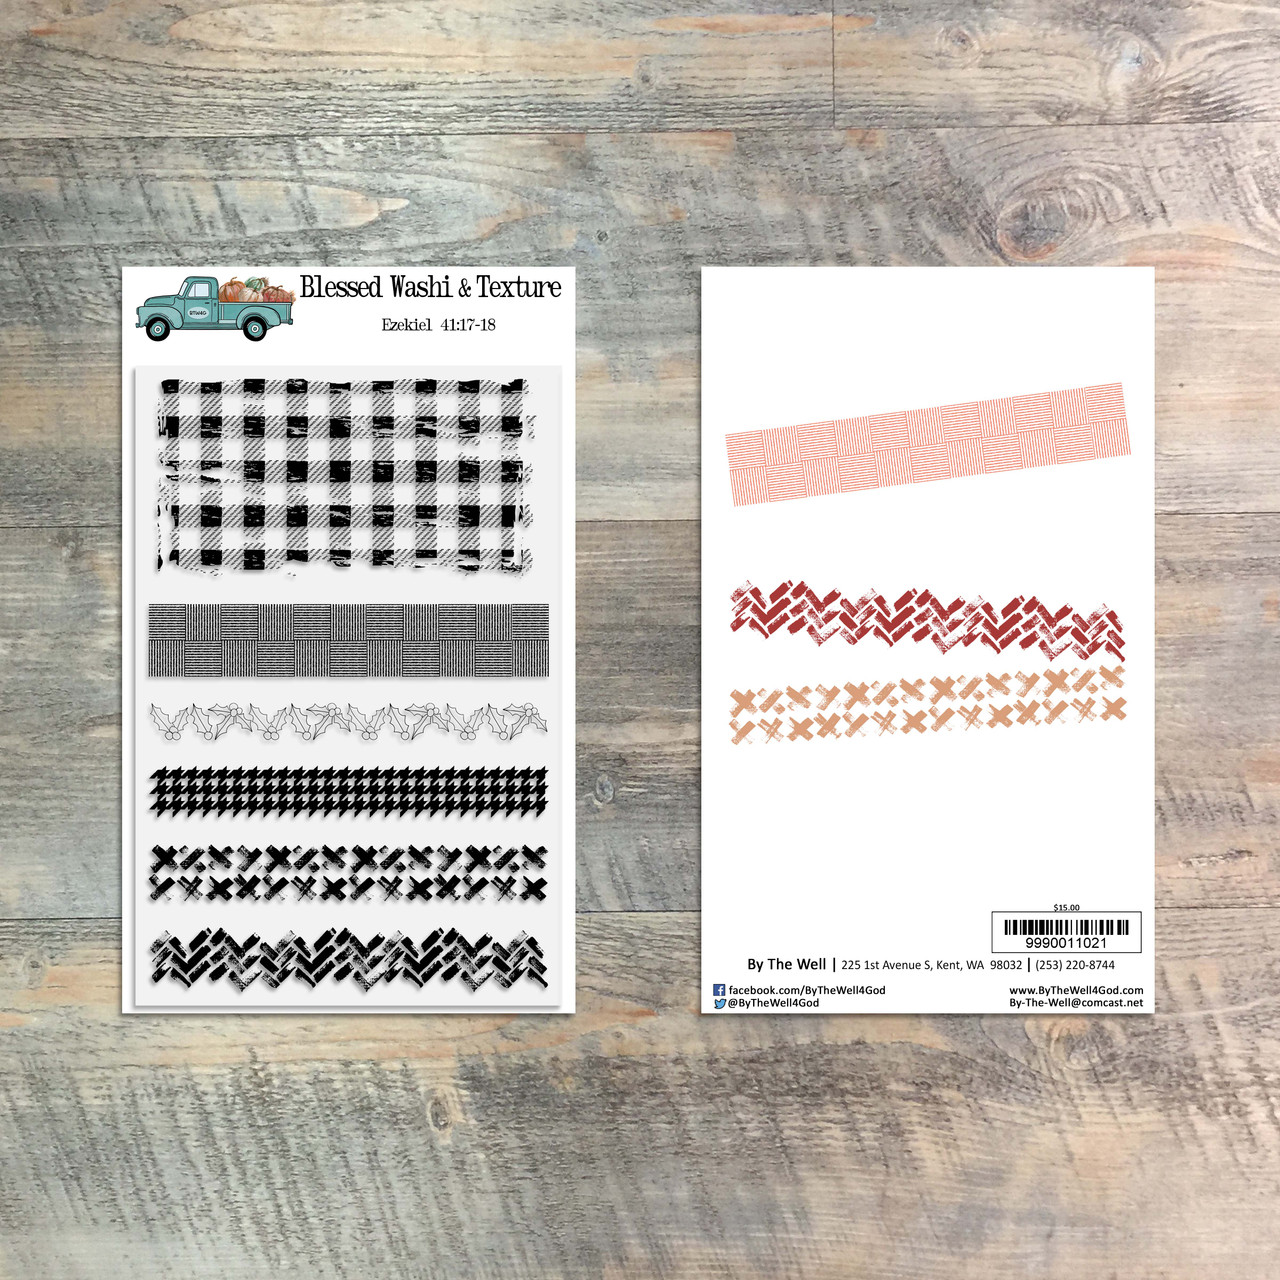 Blessed Washi & Texture - 6 Piece Stamp Set - ByTheWell4God